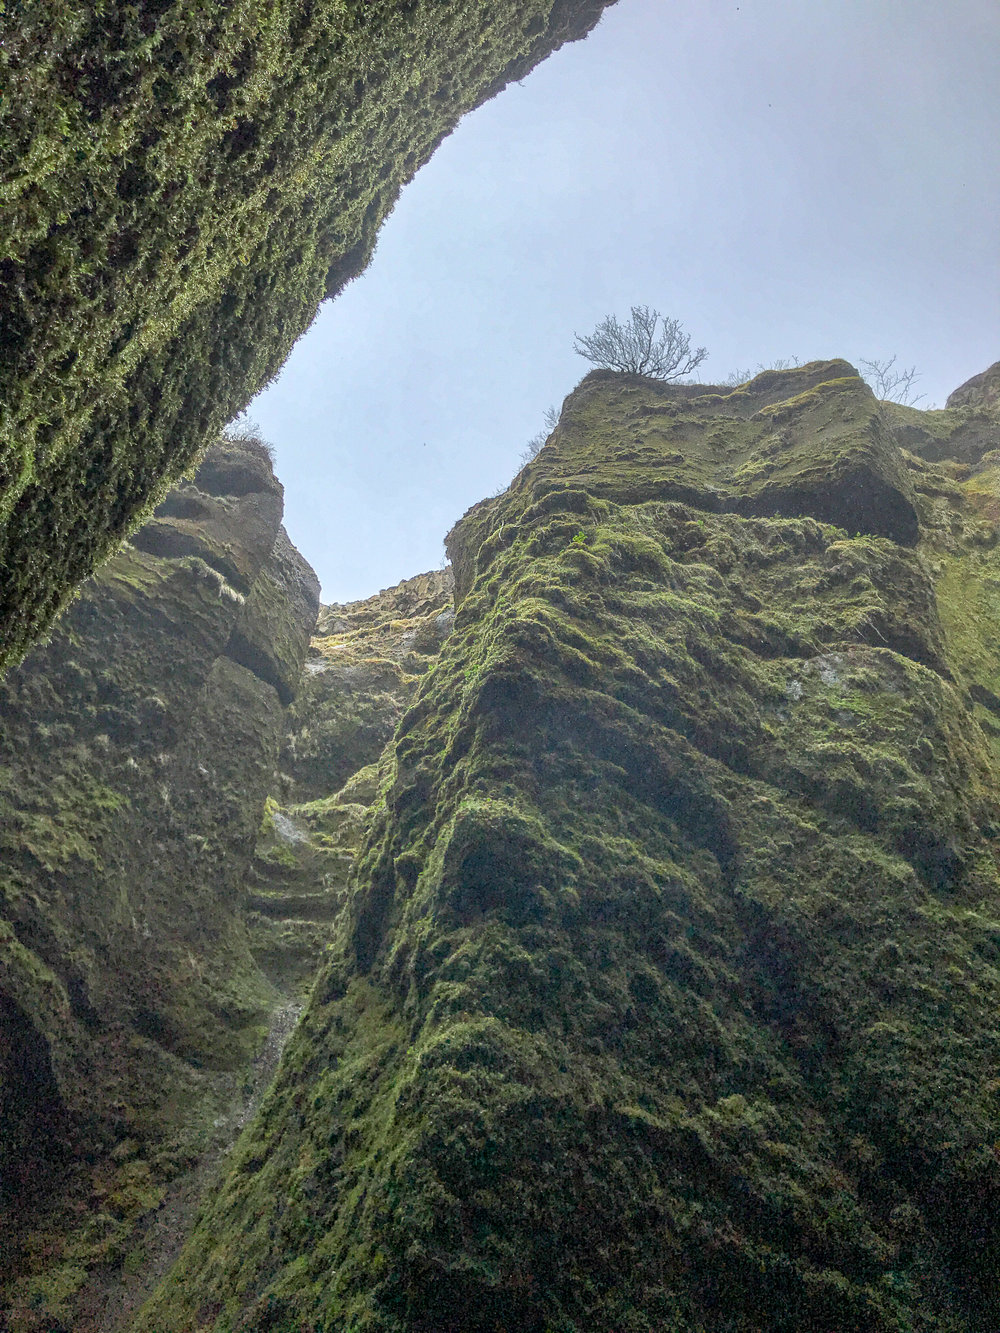 Looking upward from the secret cave